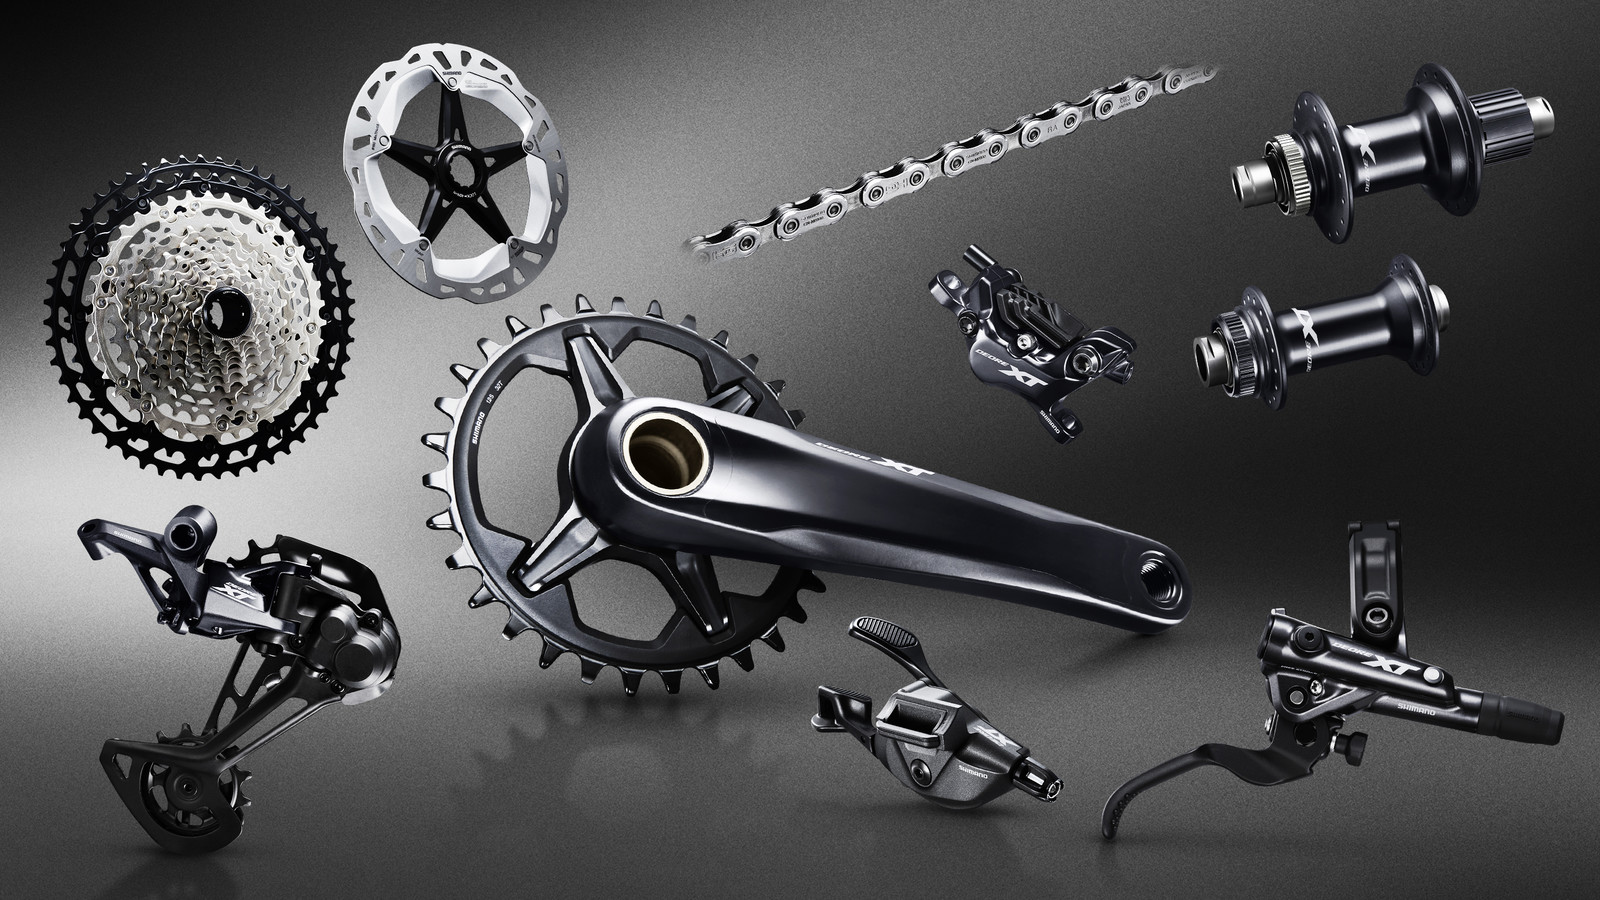 6e7a9f66ed5 Shimano's new XT group is tied together with a classy, fast, polished black  finish. The clean, smooth styling gives the group a cohesive look and feel  ...